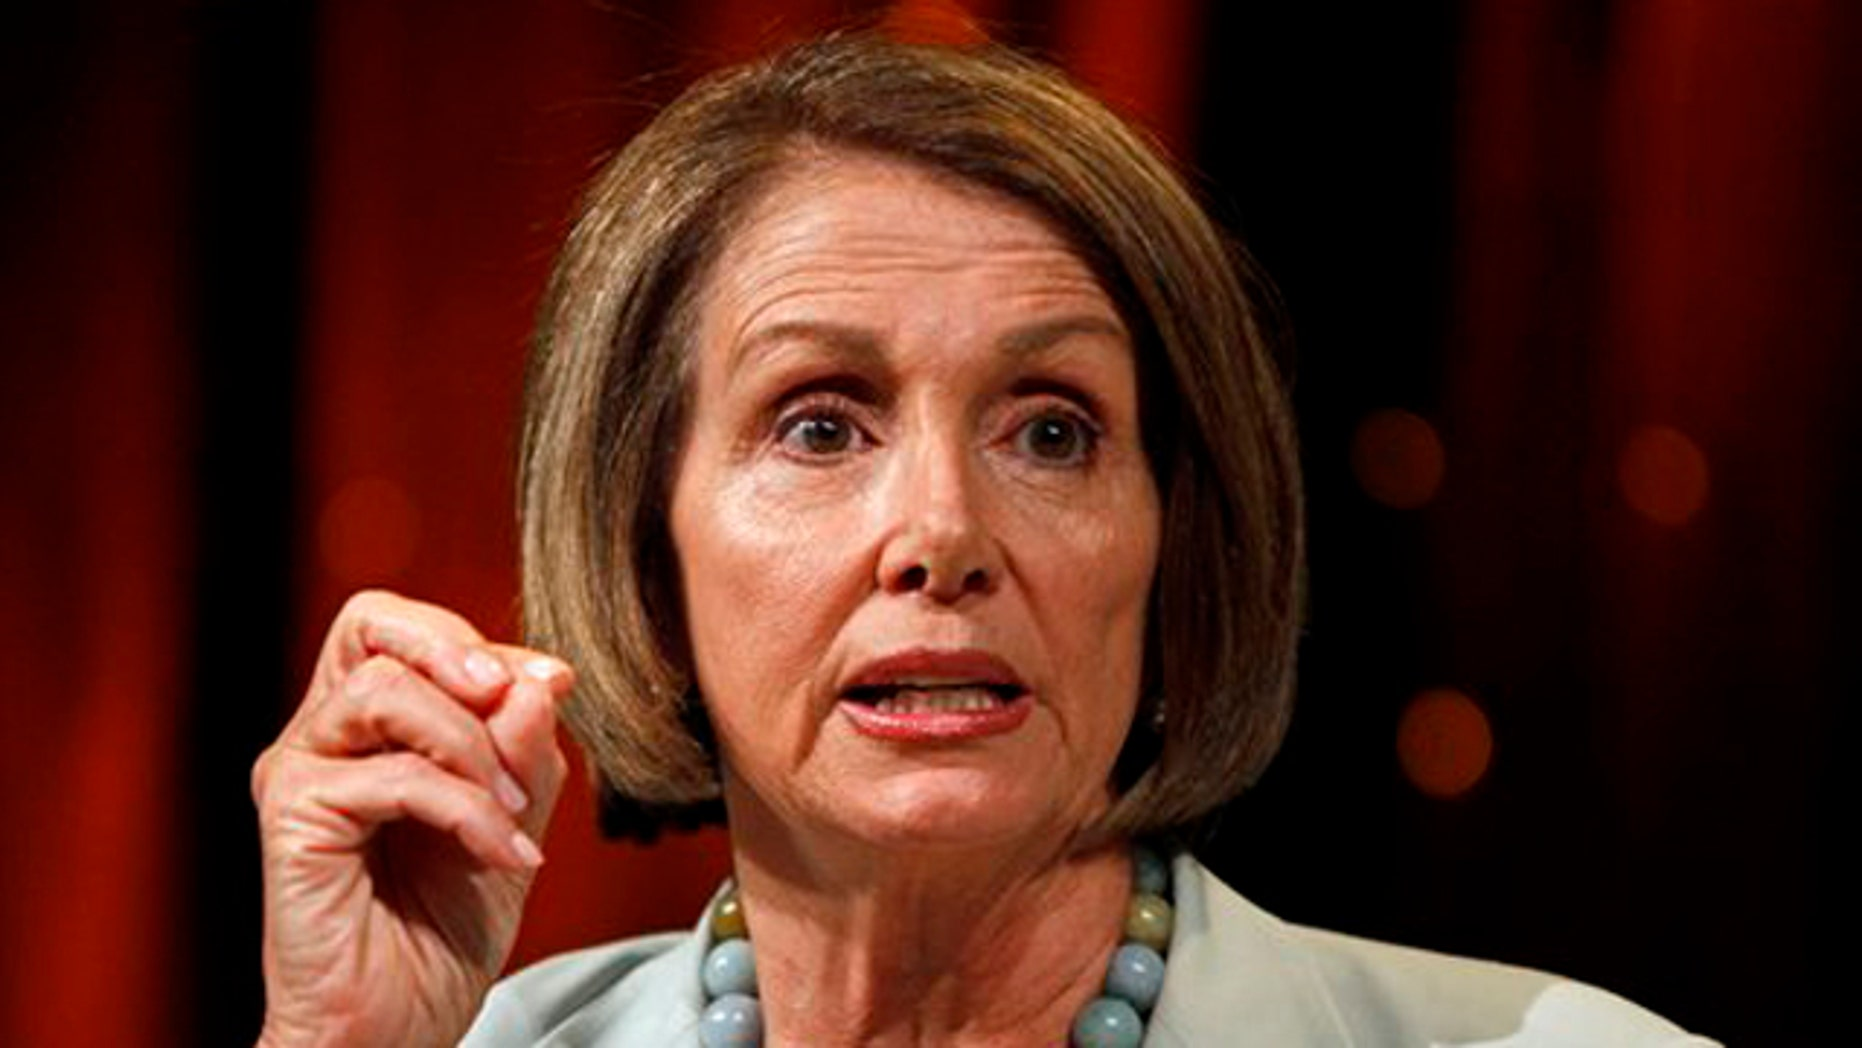 House Speaker Nancy Pelosi answers questions during a Netroots Nation convention in Las Vegas on July 24. (AP Photo)